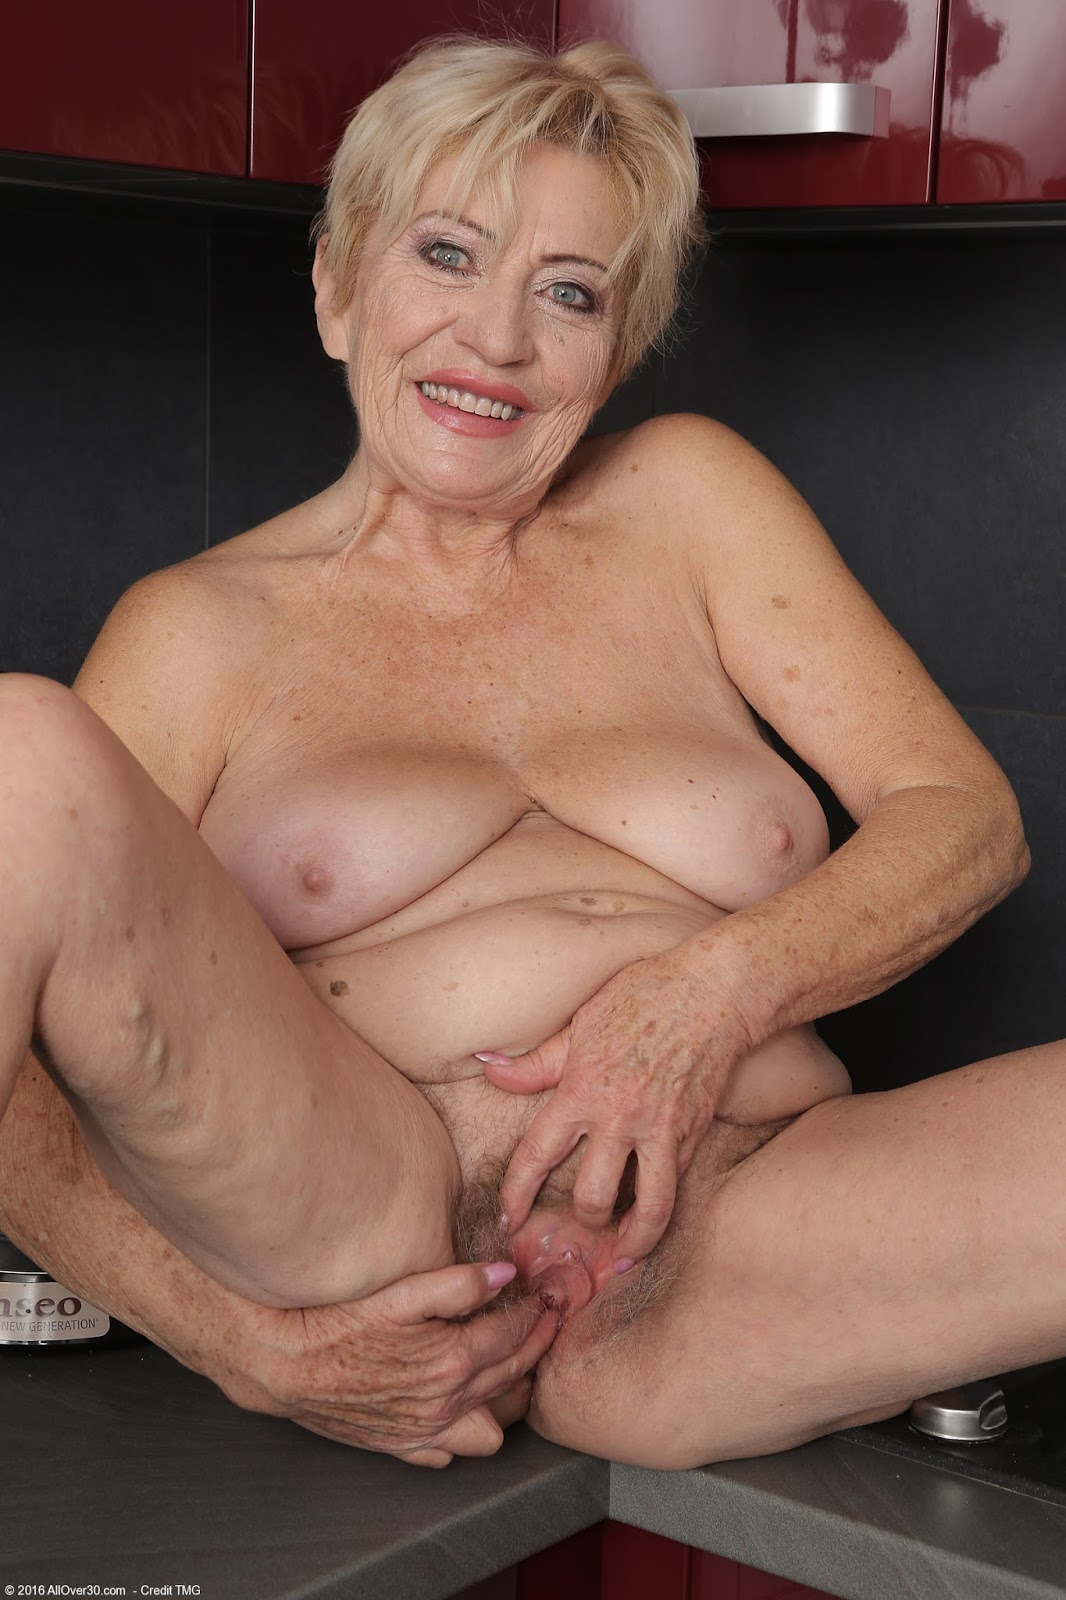 Adele blonde milf with big tits camaster 4